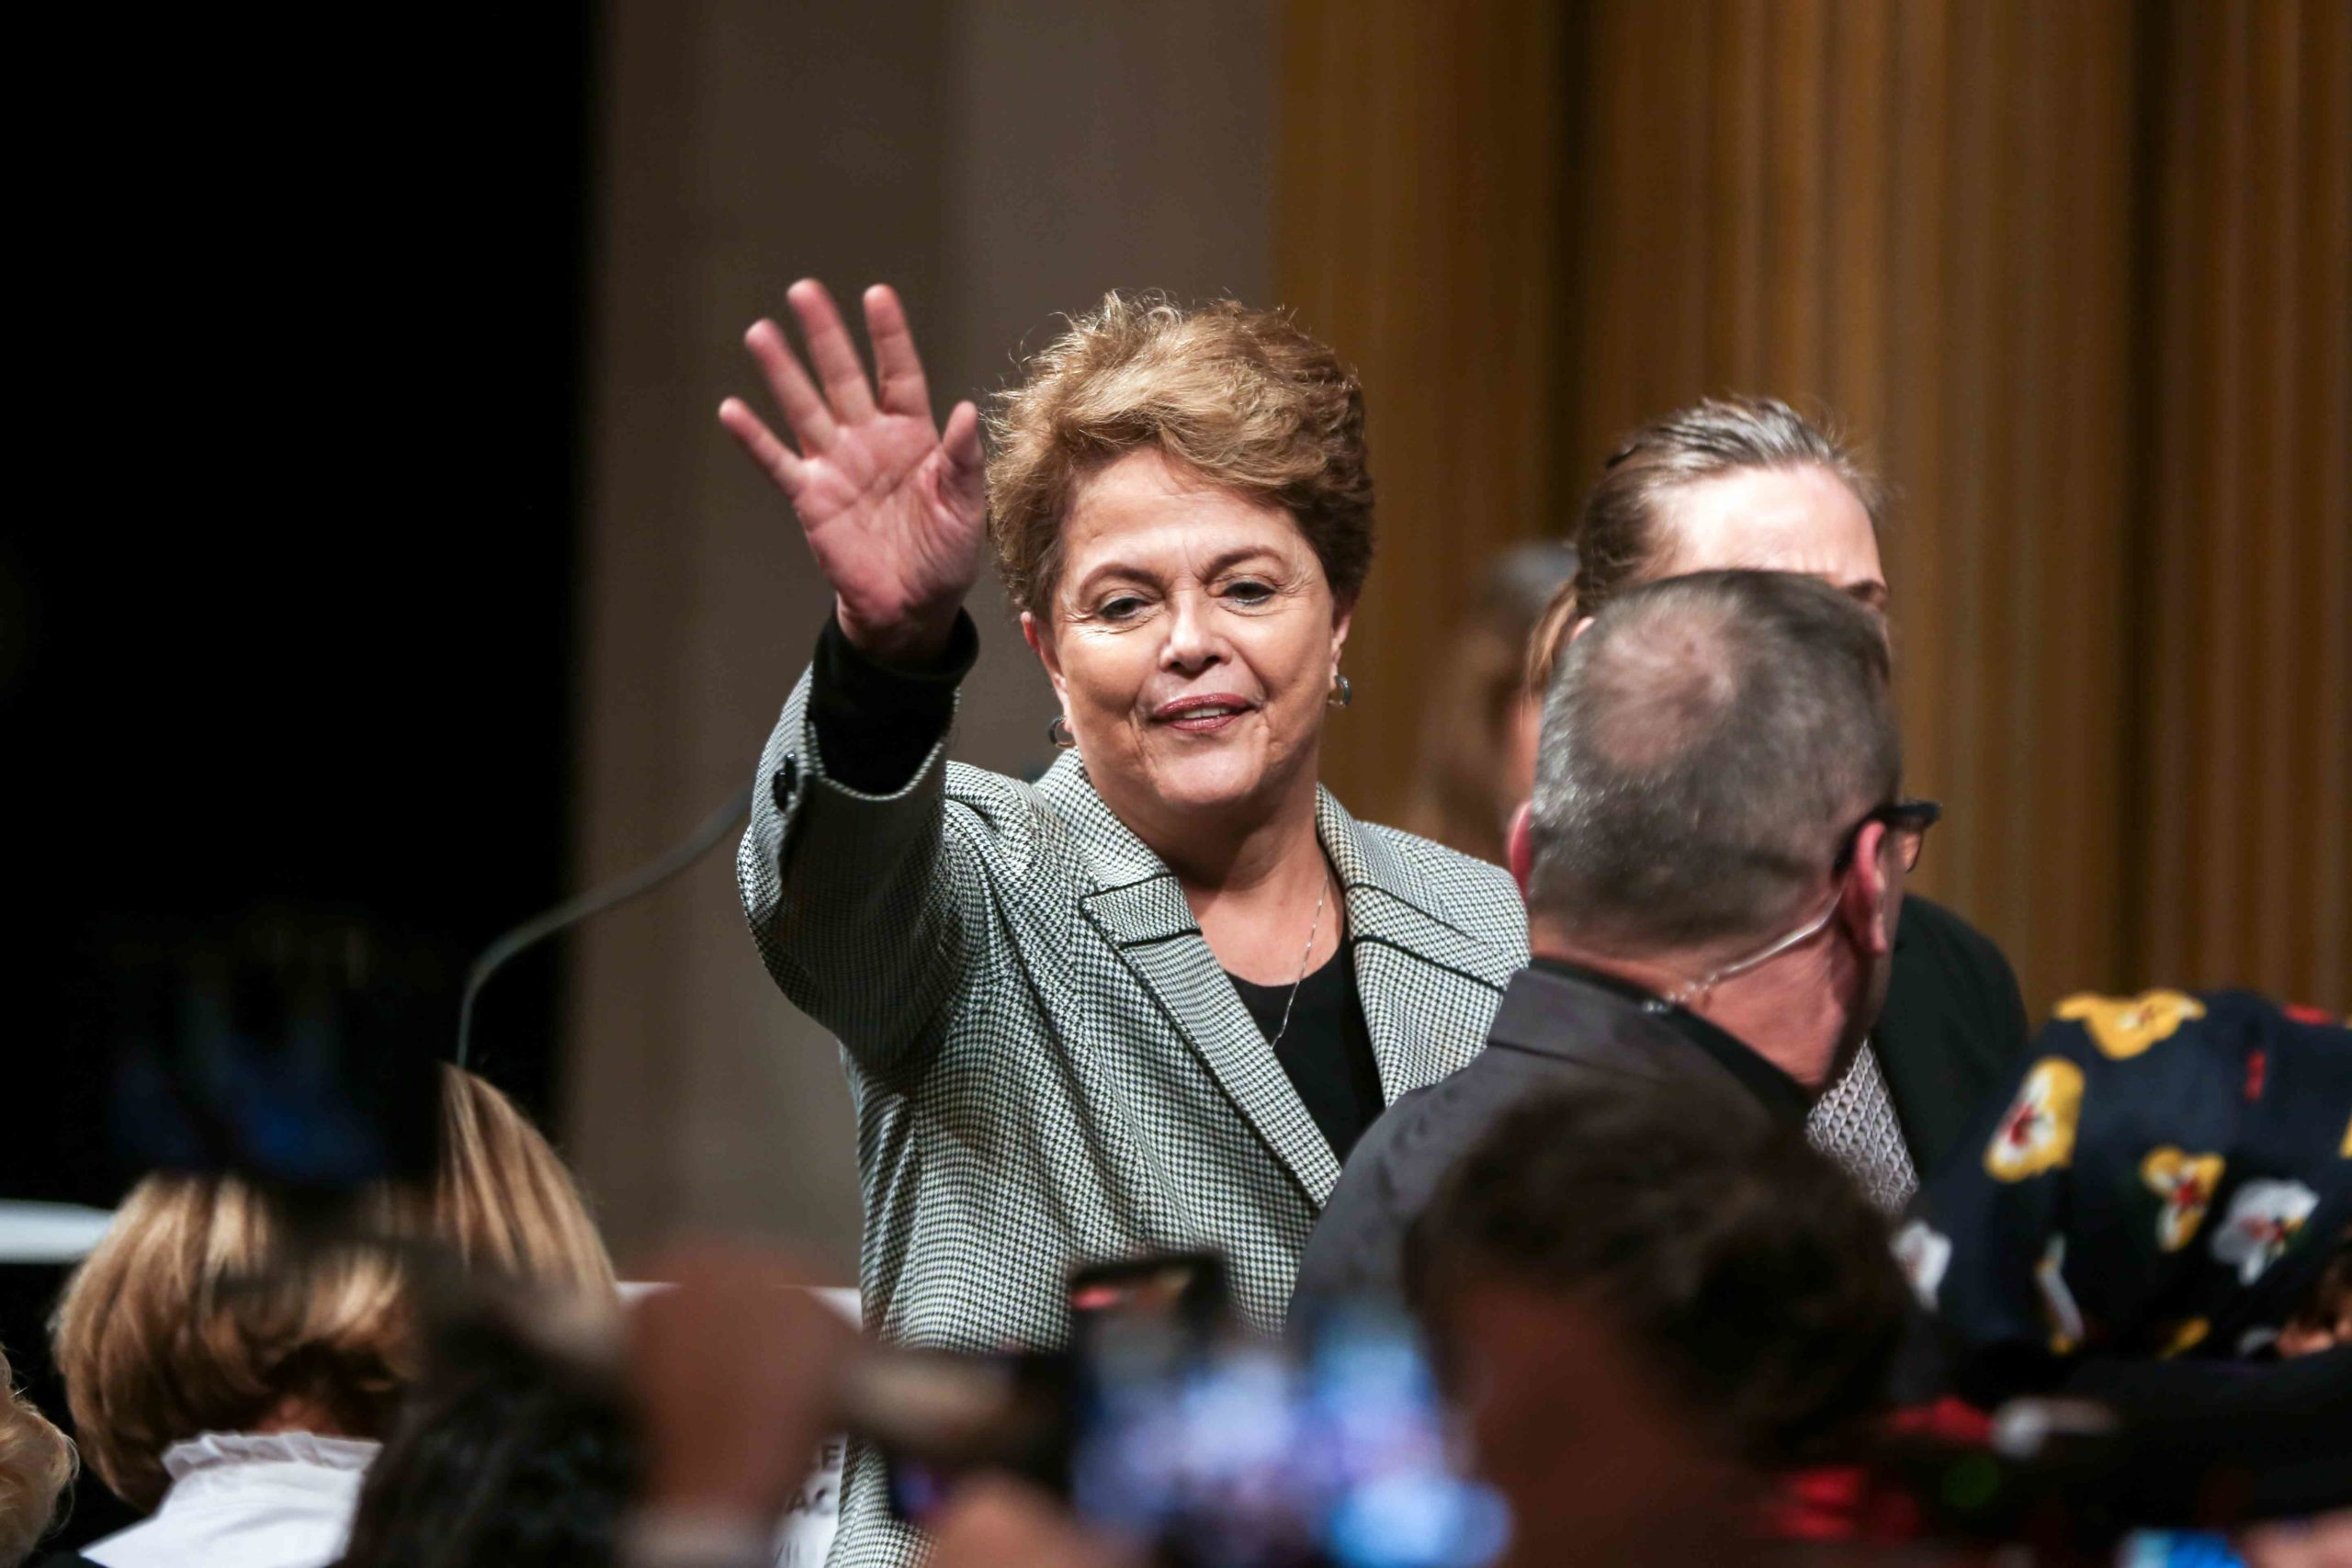 Former Brazilian president Dilma Rousseff (C) salute the crowd as she takes part in a ceremony at the City Hall of Paris, on March 2, 2020, during witch former Brazilian president Luiz Inacio Lula da Silva was named  honorary citizen of the city of Paris.